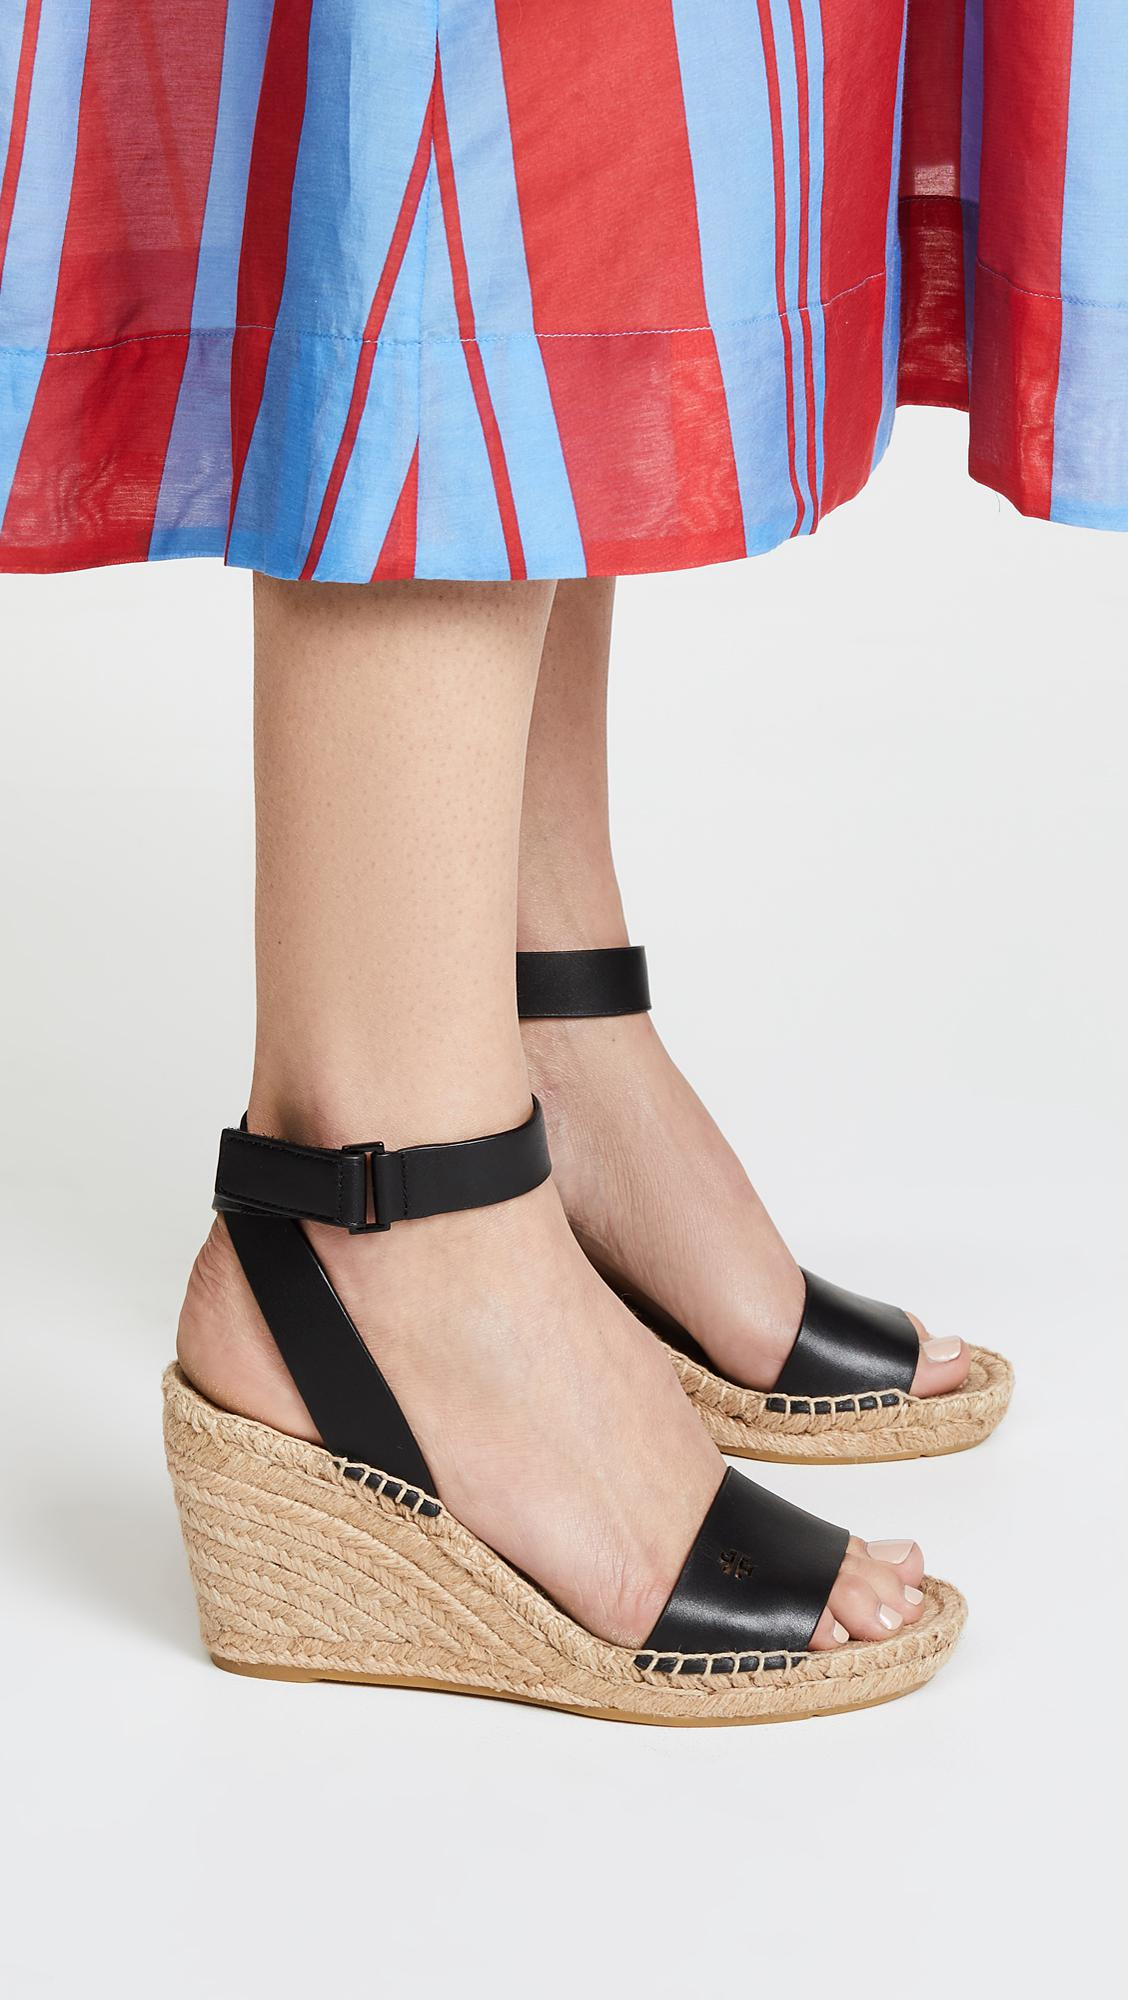 e96189f937d Lyst - Tory Burch Bima 2 90mm Wedge Espadrilles in Black